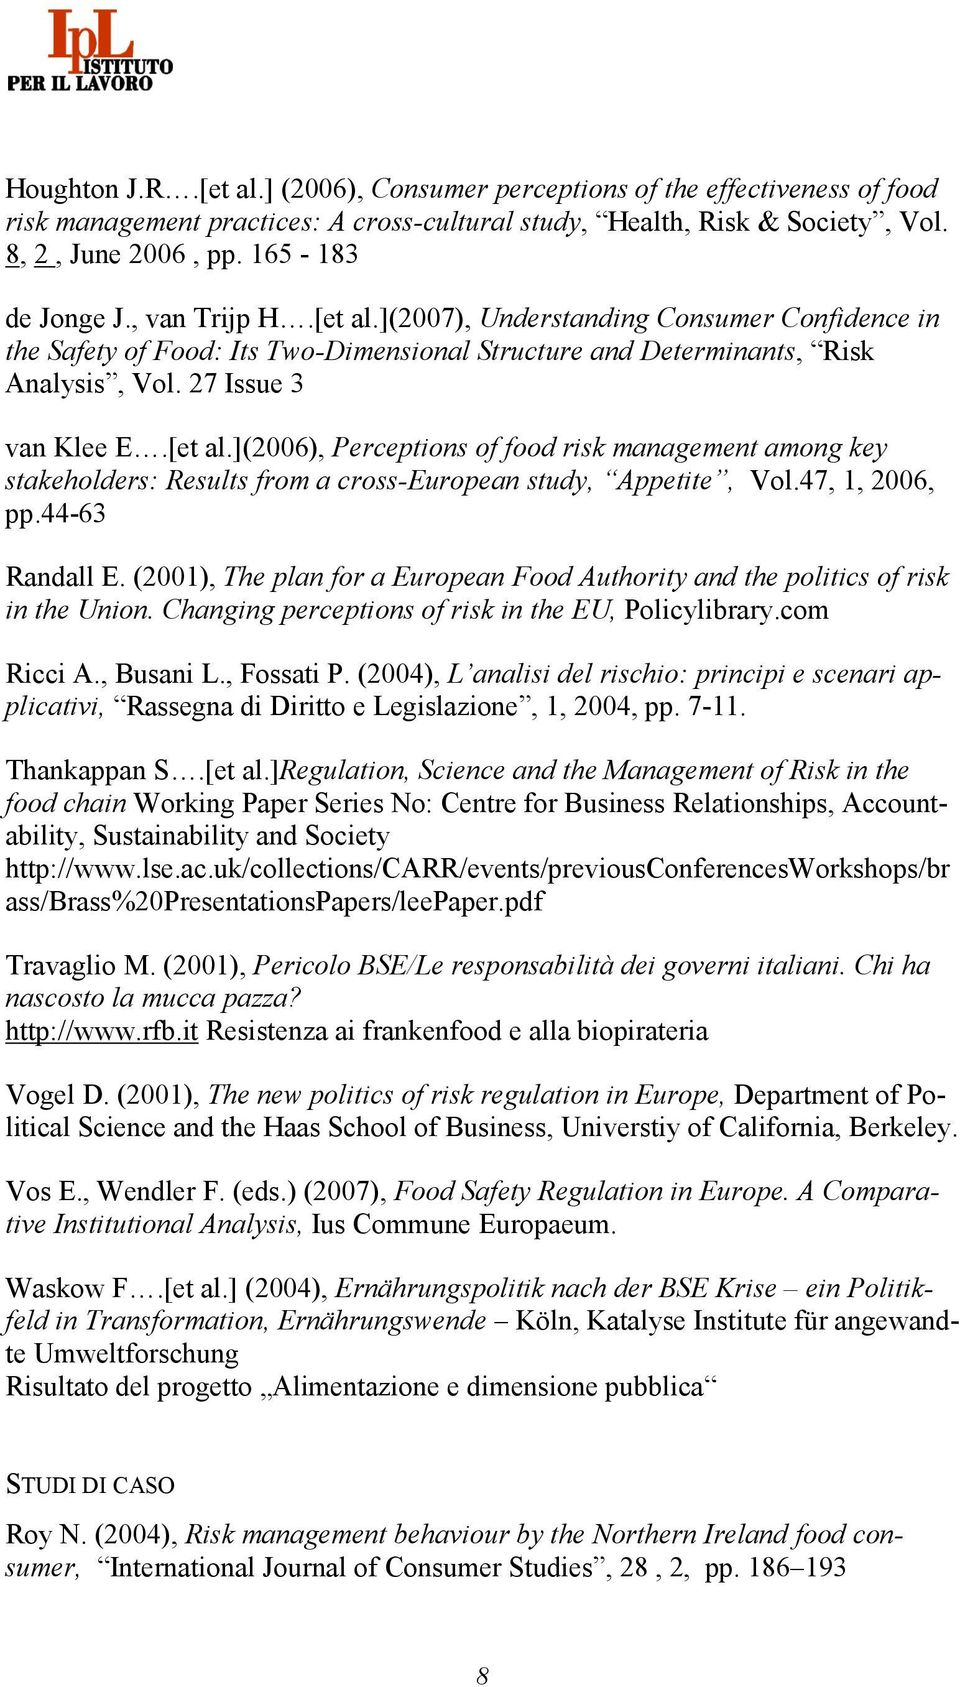 47, 1, 2006, pp.44-63 Randall E. (2001), The plan for a European Food Authority and the politics of risk in the Union. Changing perceptions of risk in the EU, Policylibrary.com Ricci A., Busani L.